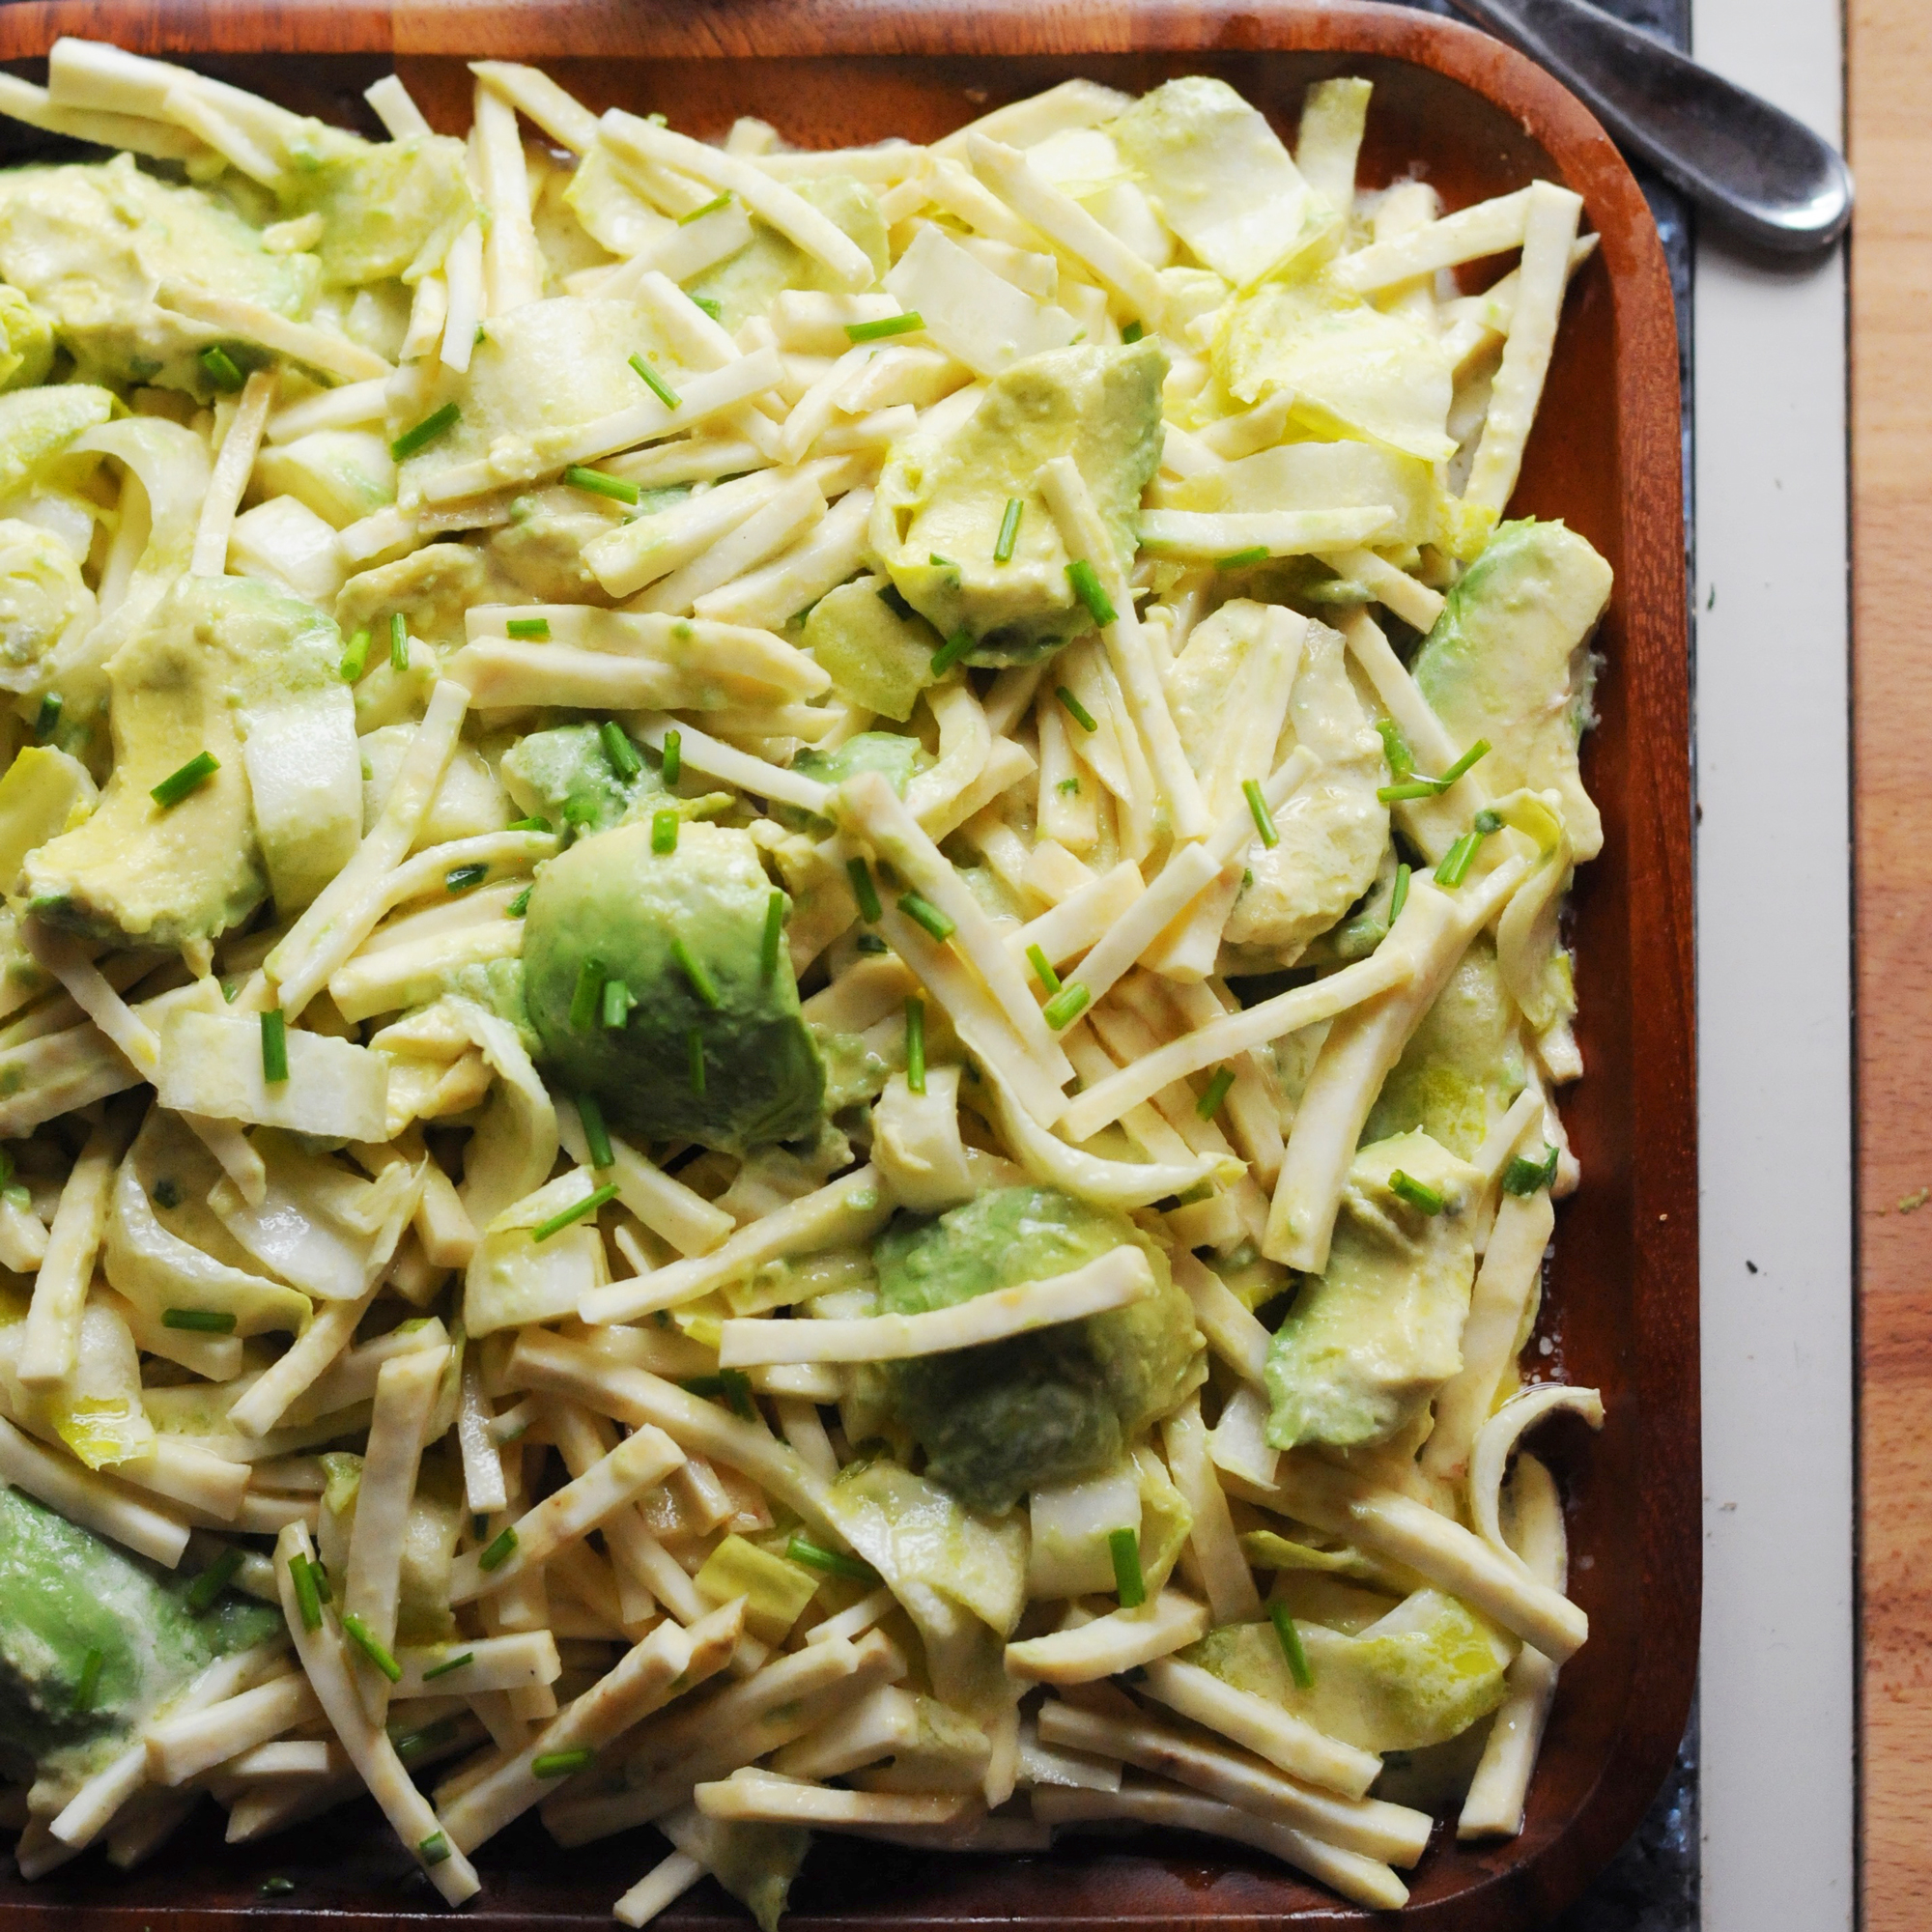 Endive, Celeriac and Avocado Salad